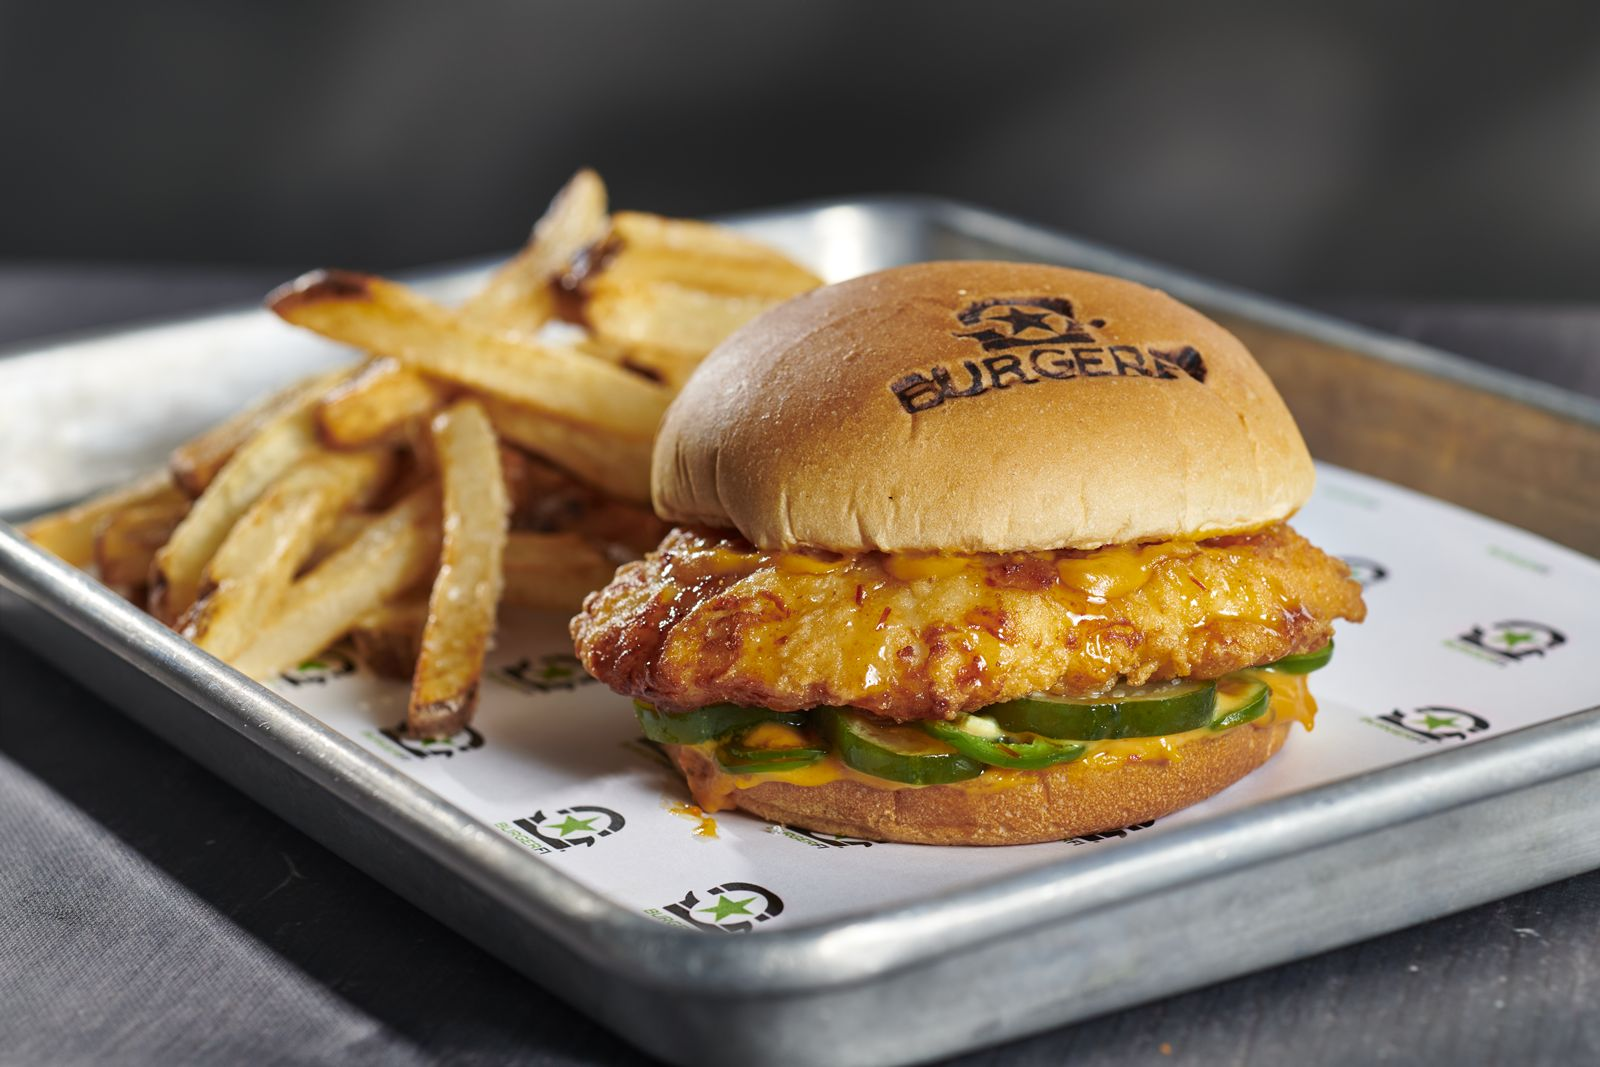 OPES Acquisition Corp.'s Business Combination Target, BurgerFi, Brings the Heat With the New Spicy Fi'ed Chicken Sandwich